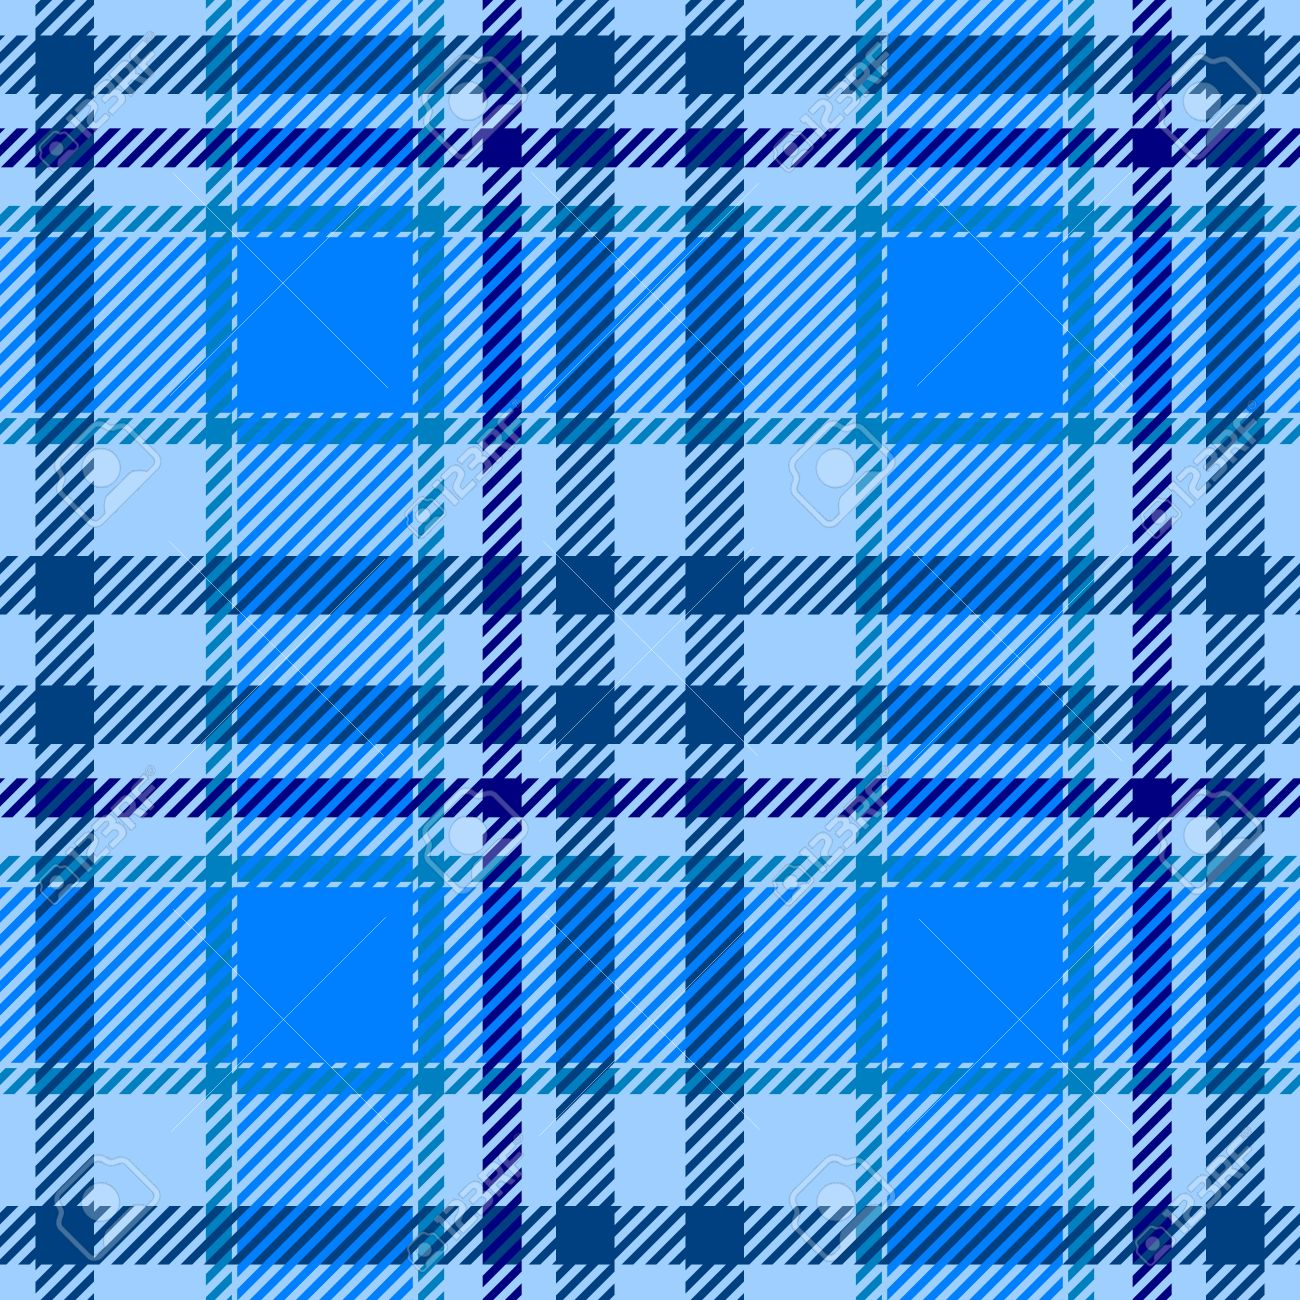 1300x1300 - Blue Plaid 23